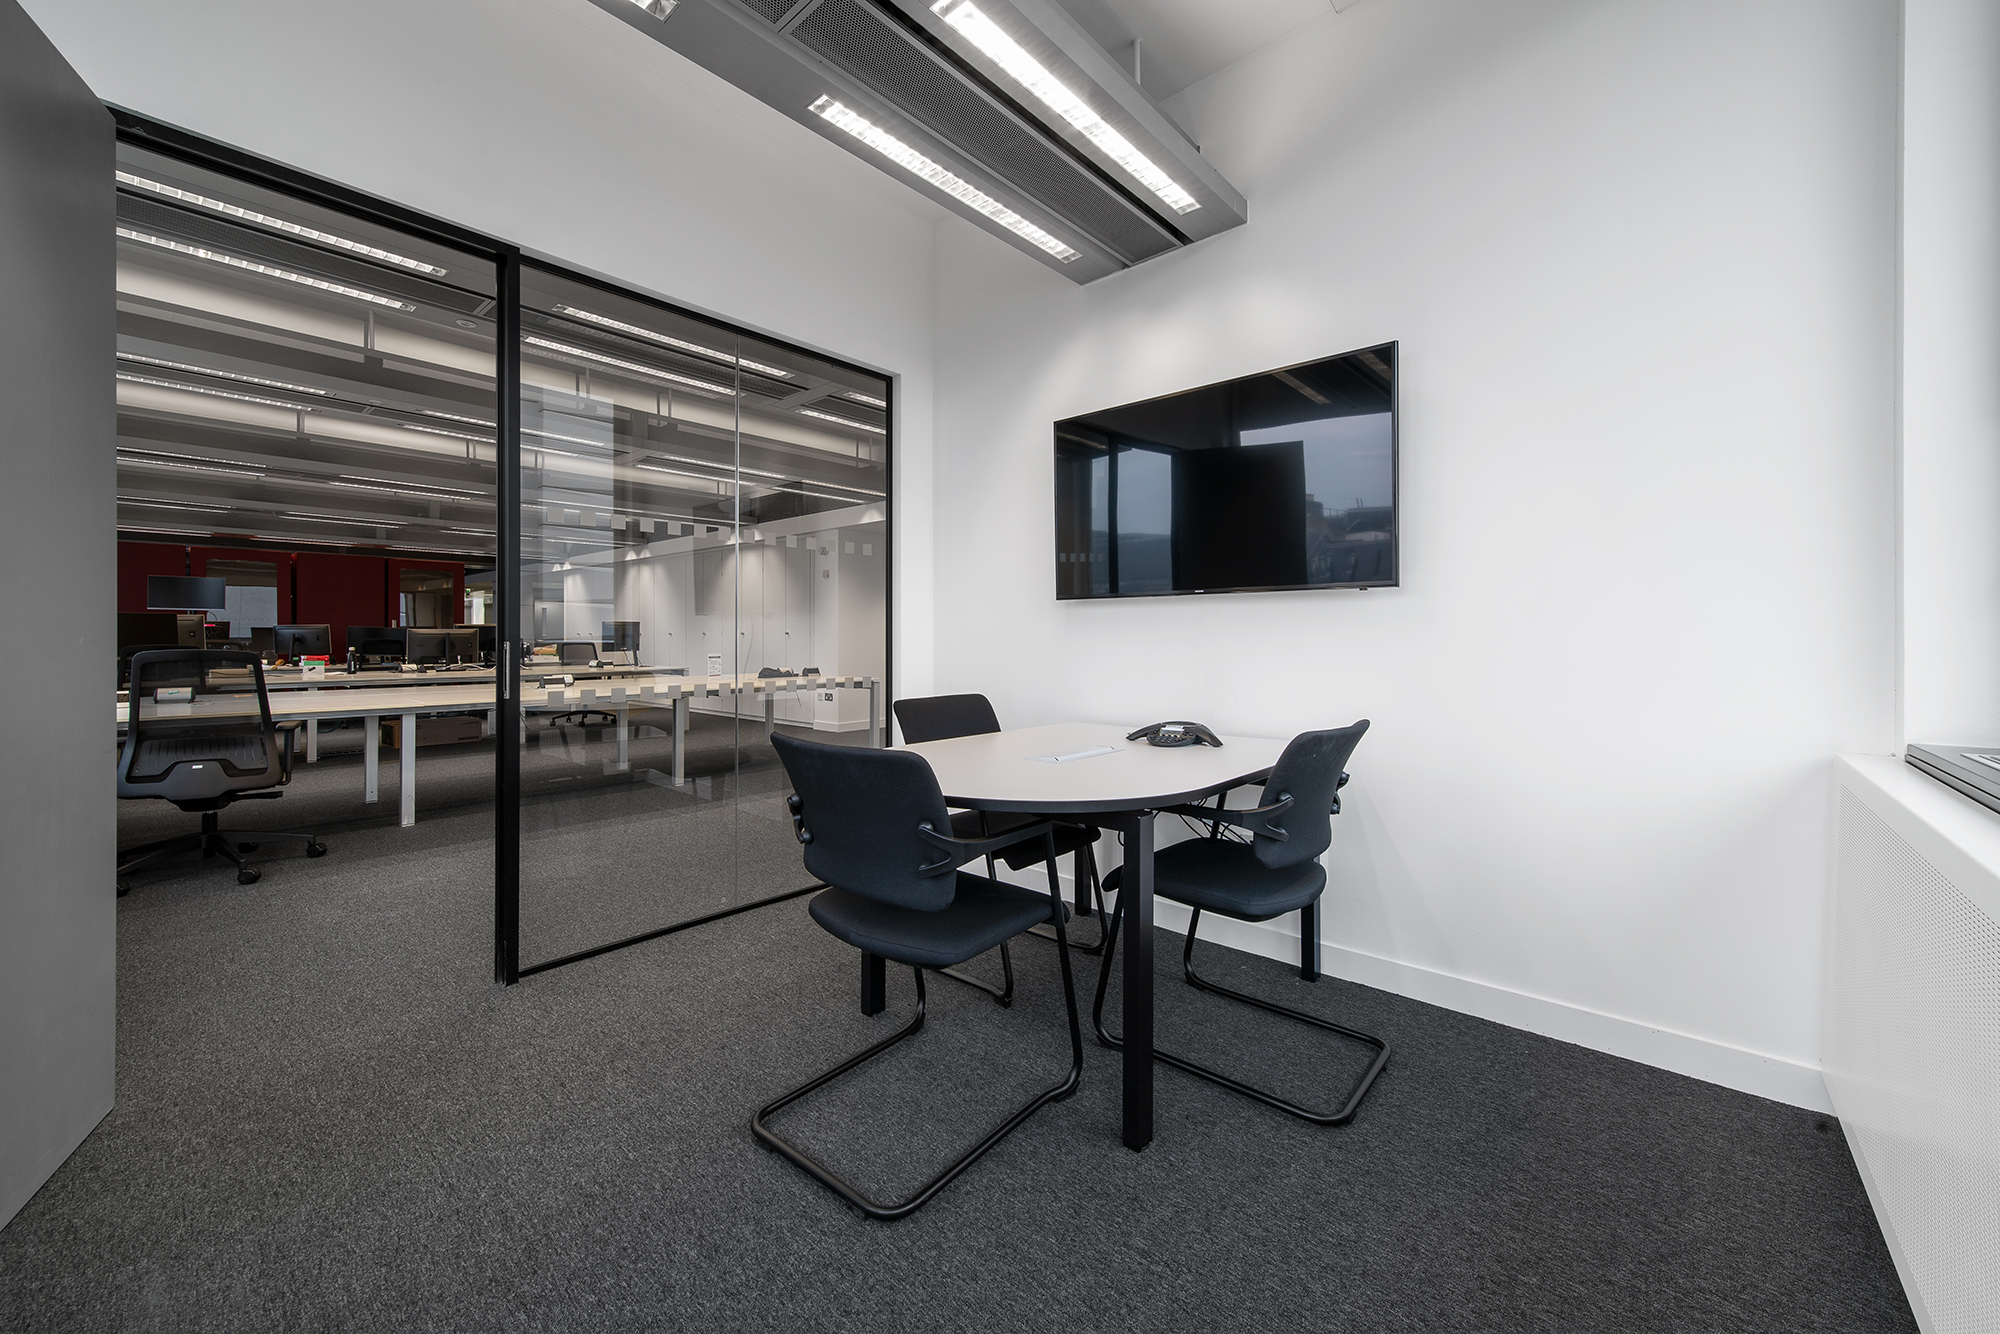 Project Management & <br> Fit Out Works